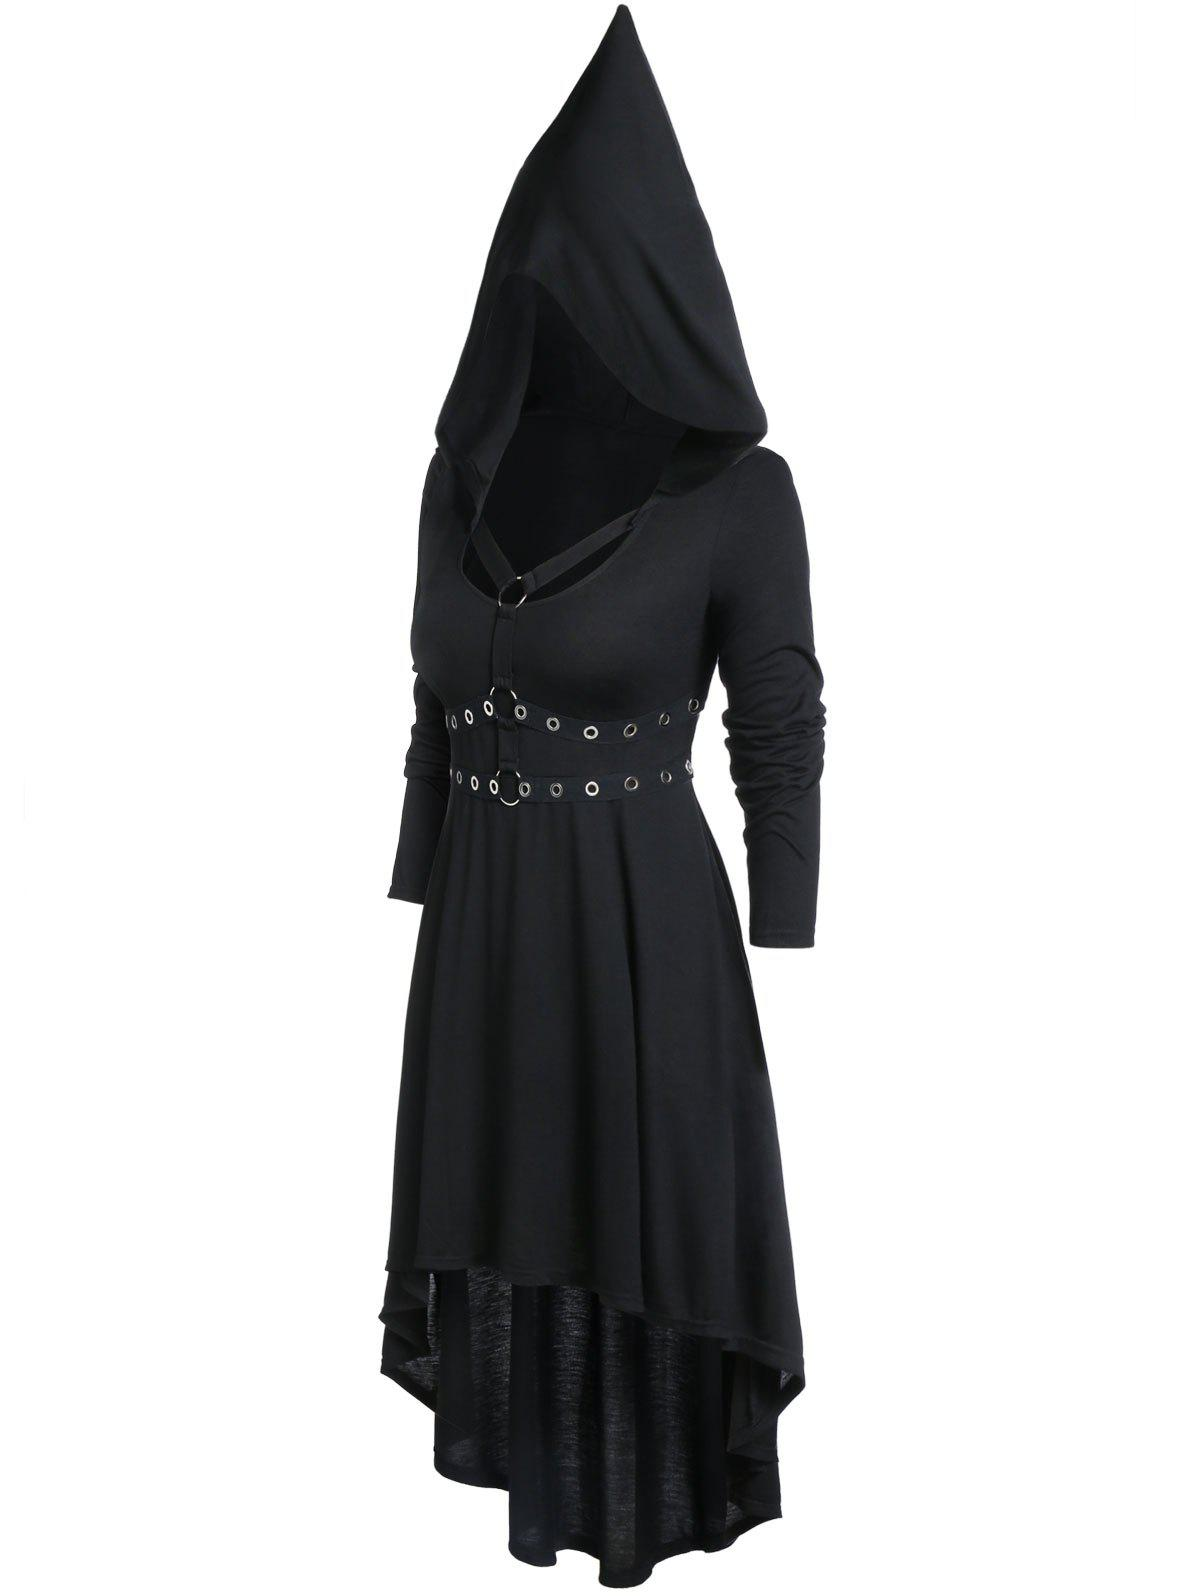 Store Plus Size High Waist Long Sleeve Rings Gothic Dress